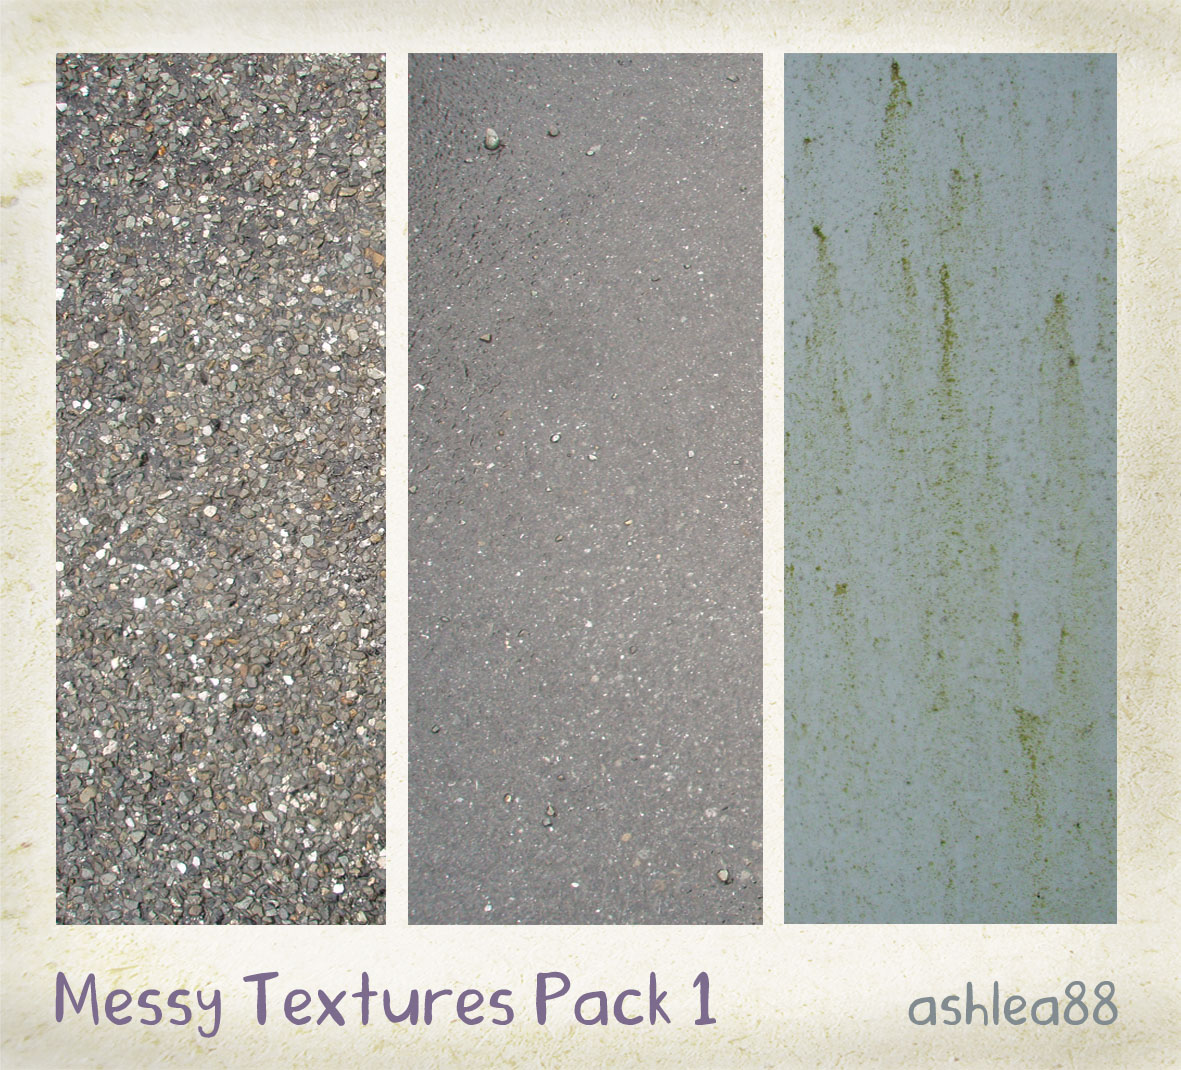 Messy Textures Pack 1